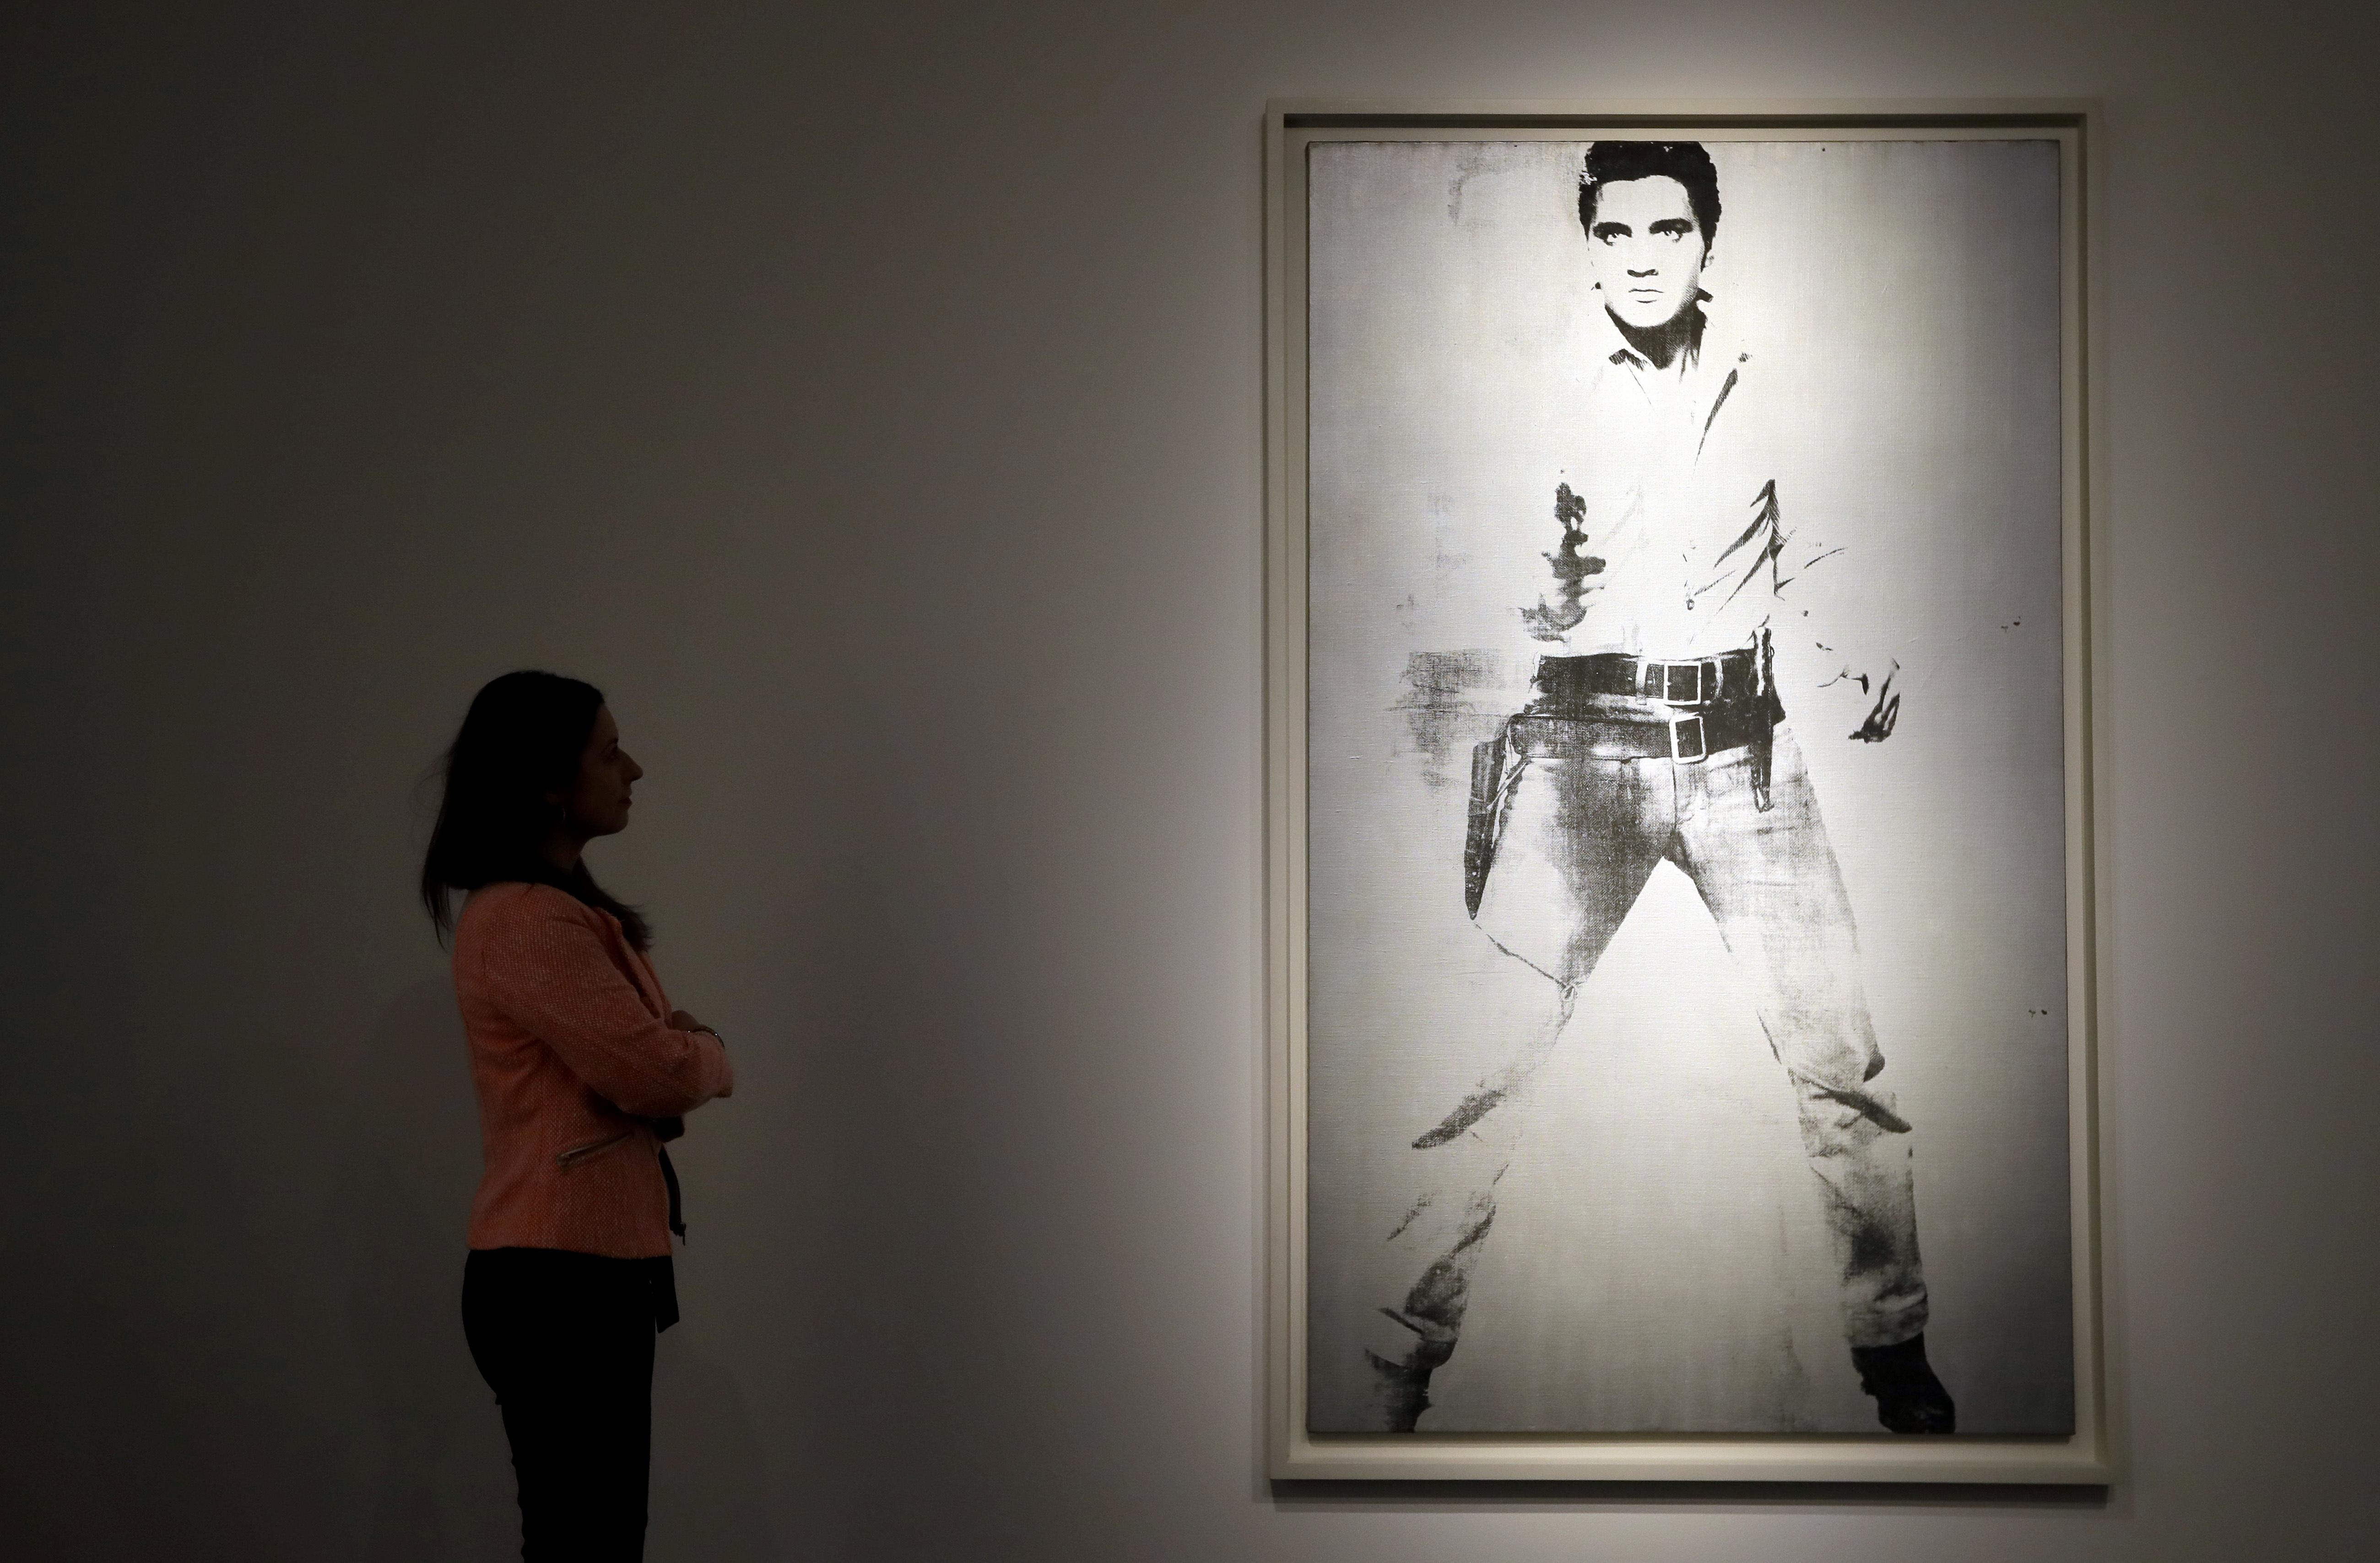 Andy Warhol's Elvis Presley portrait could fetch $30M at